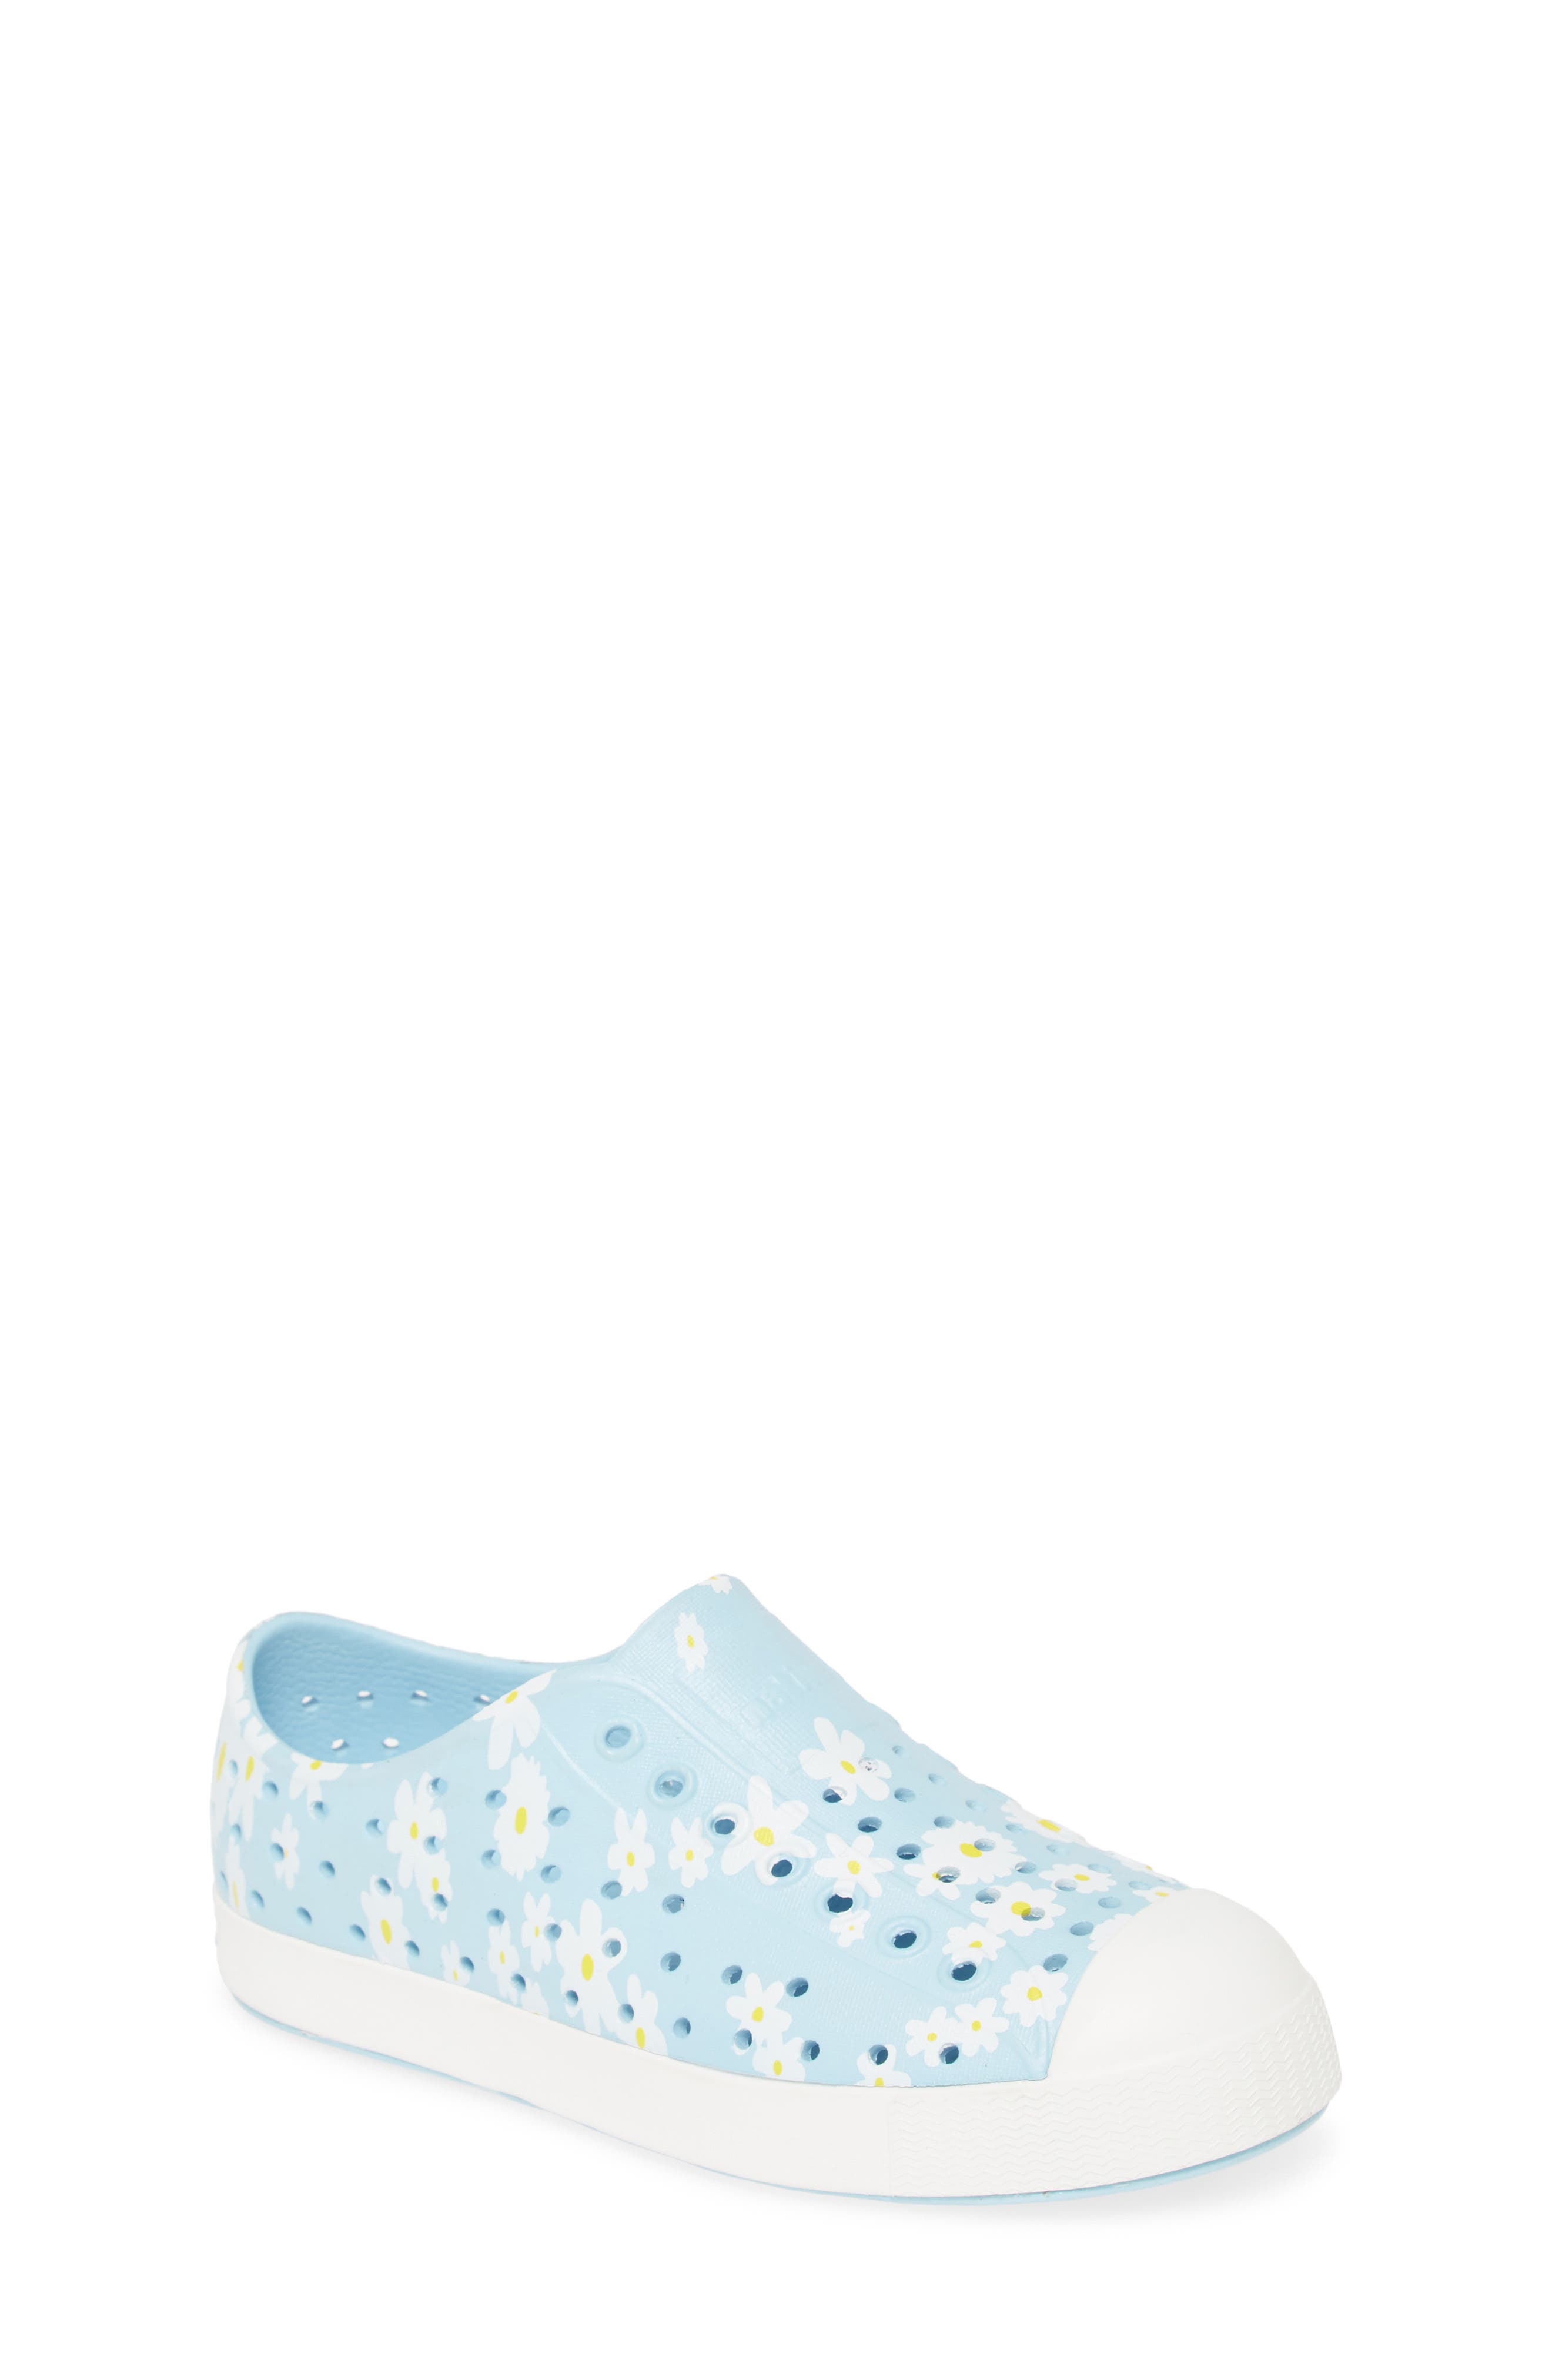 Native Shoes Little Kid (Sizes 12.5-3)